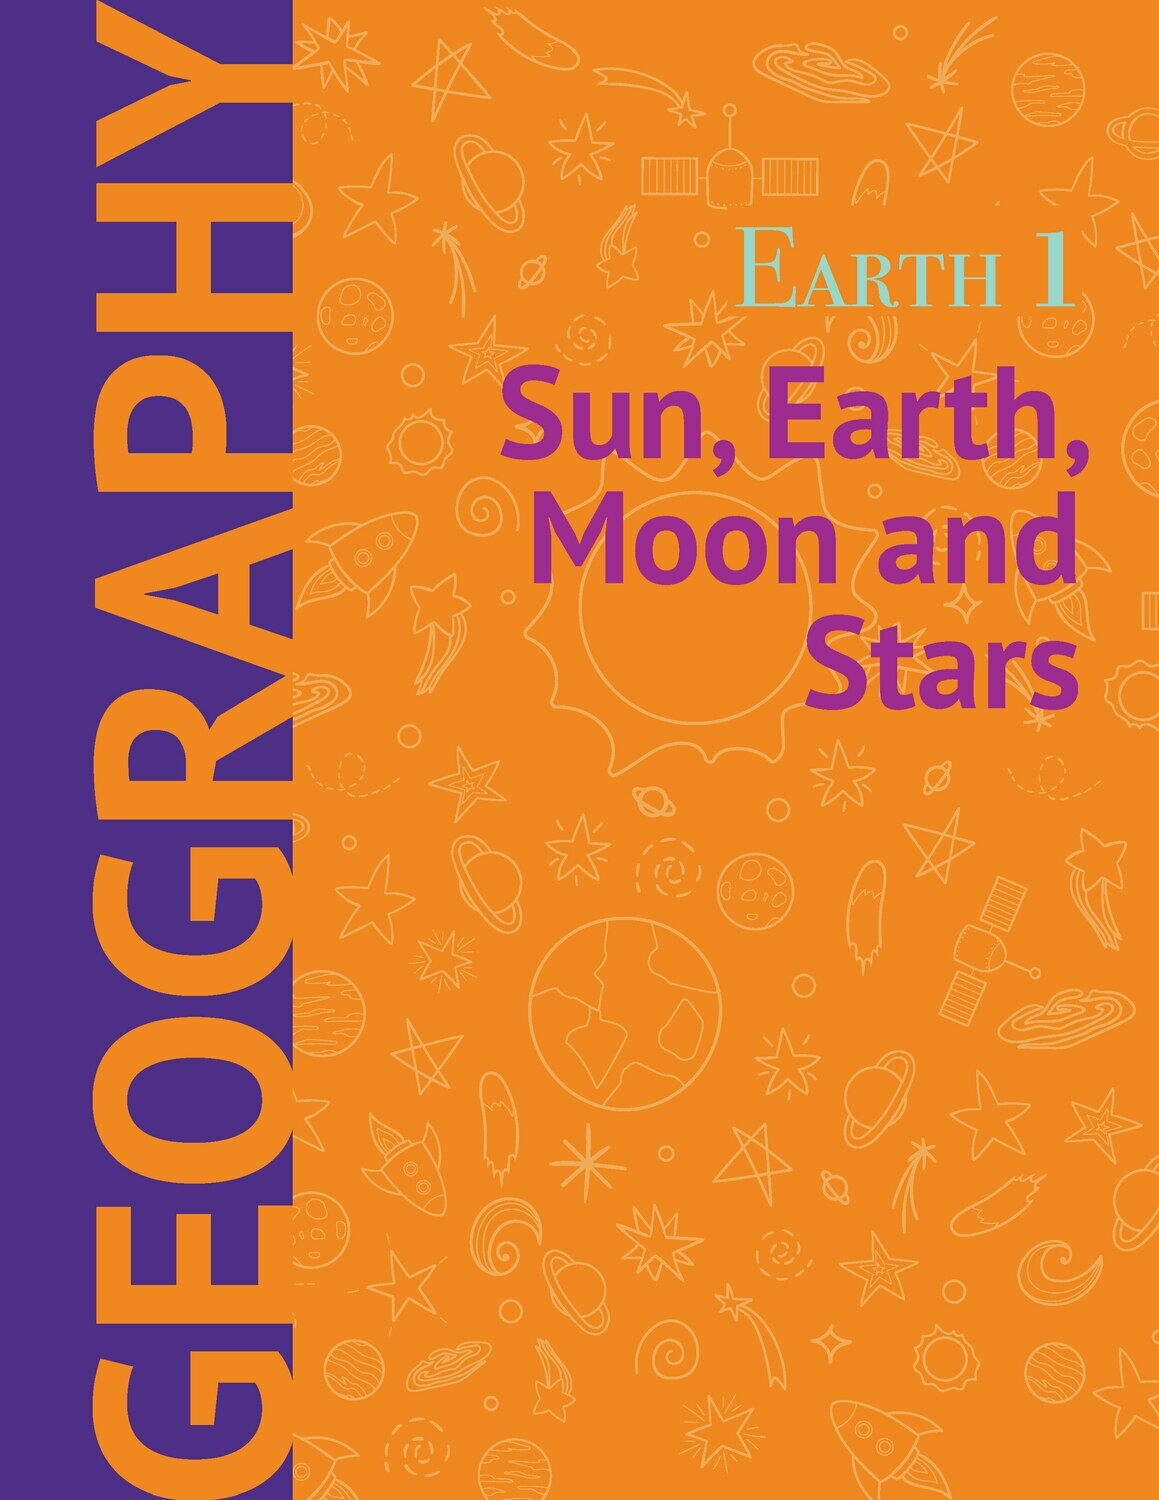 Earth 1 - Sun, Earth, Moon and Stars - Free Download!